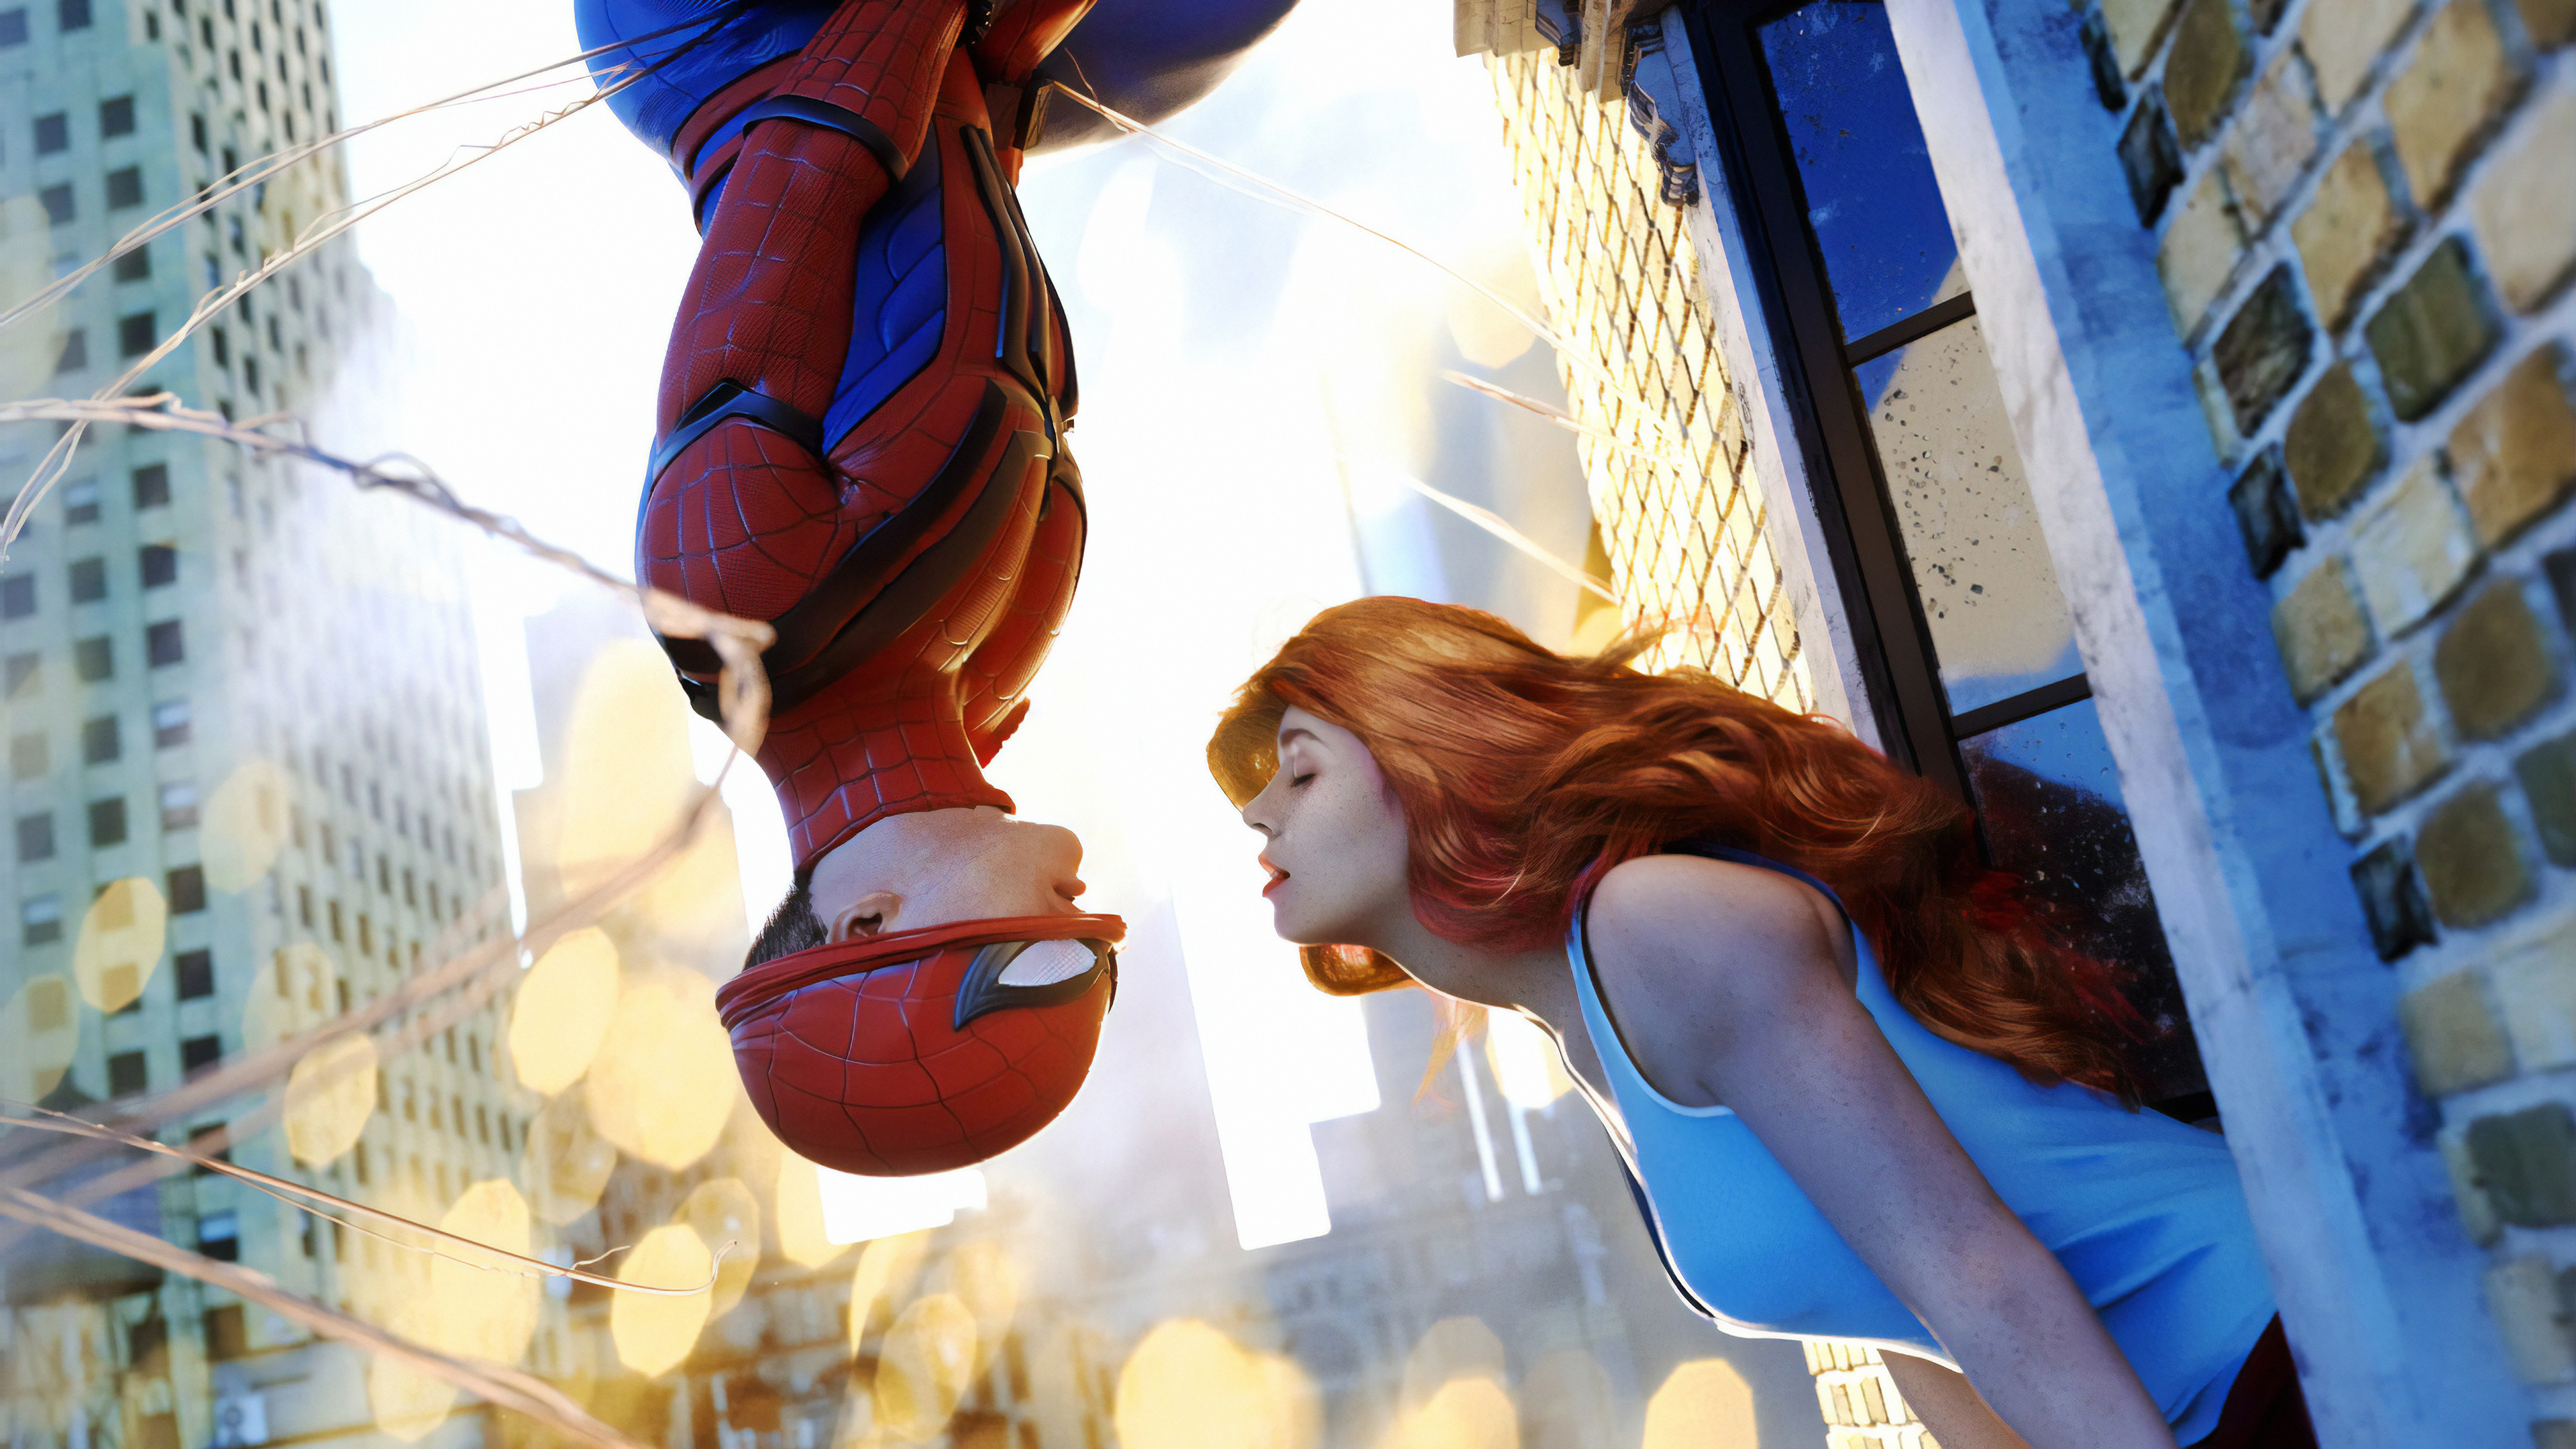 spiderman before we go 1562106120 - Spiderman Before We Go - superheroes wallpapers, spiderman wallpapers, mary jane wallpapers, hd-wallpapers, digital art wallpapers, artwork wallpapers, artstation wallpapers, art wallpapers, 4k-wallpapers